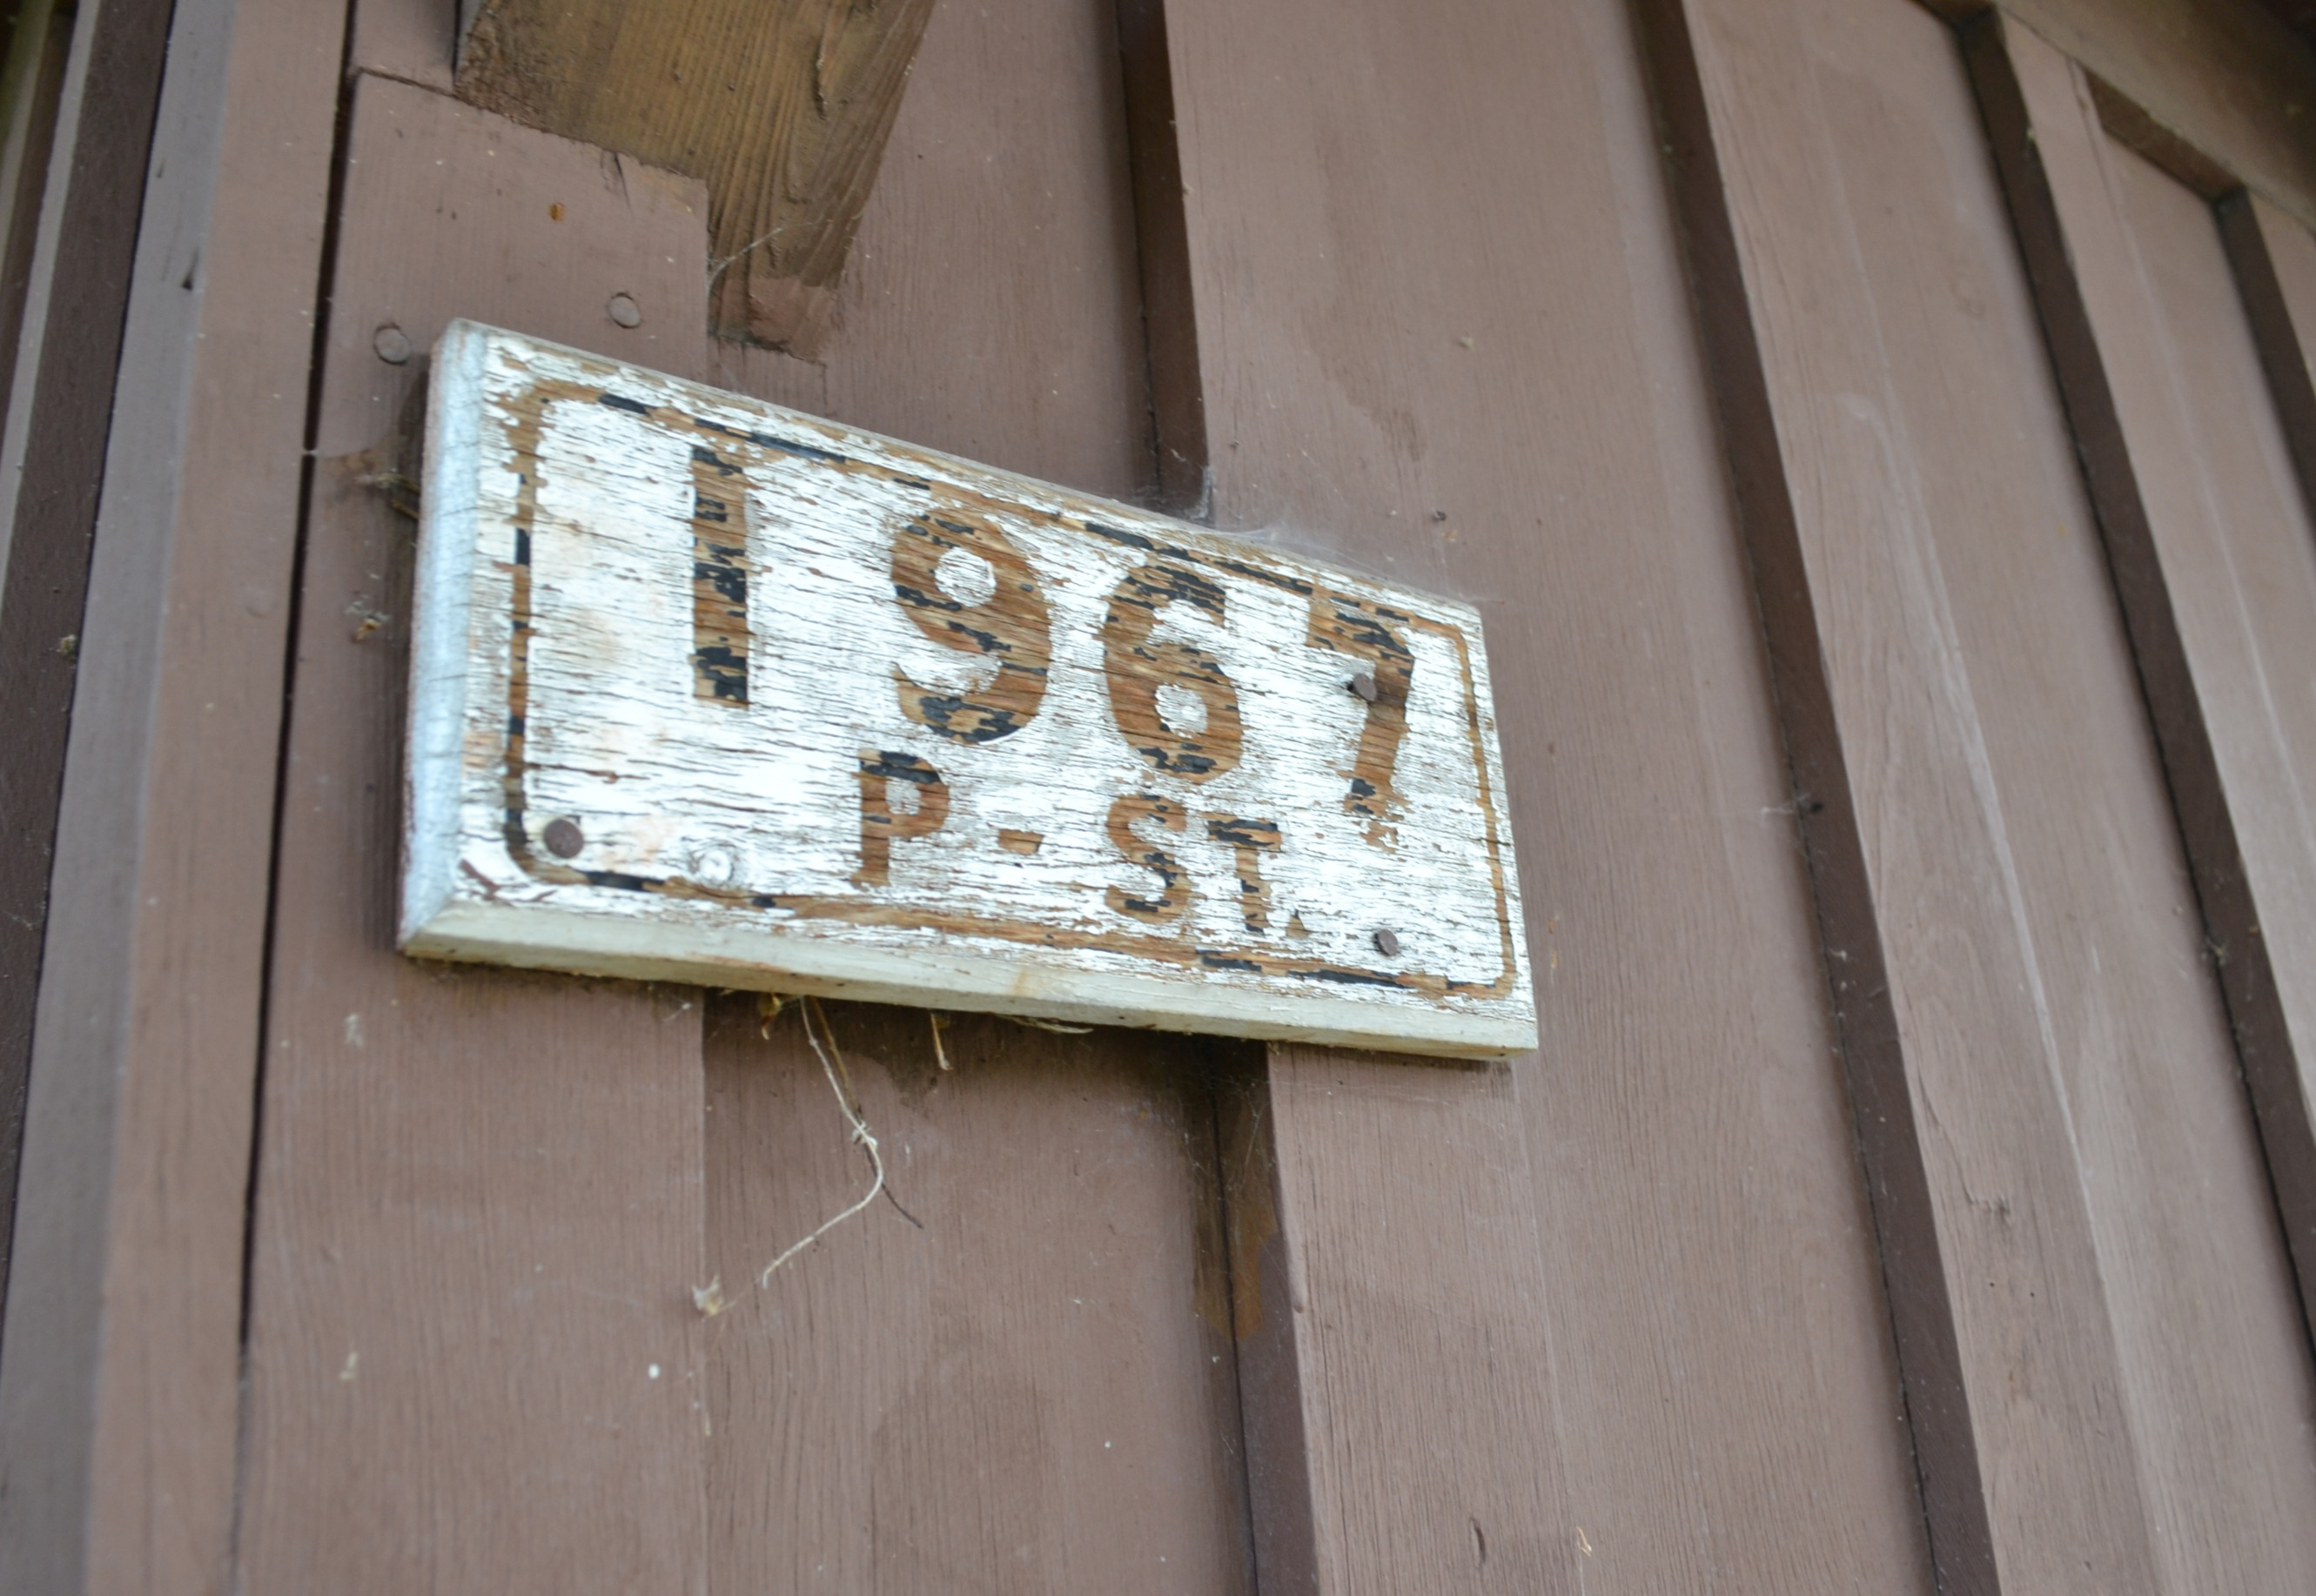 Original address sign